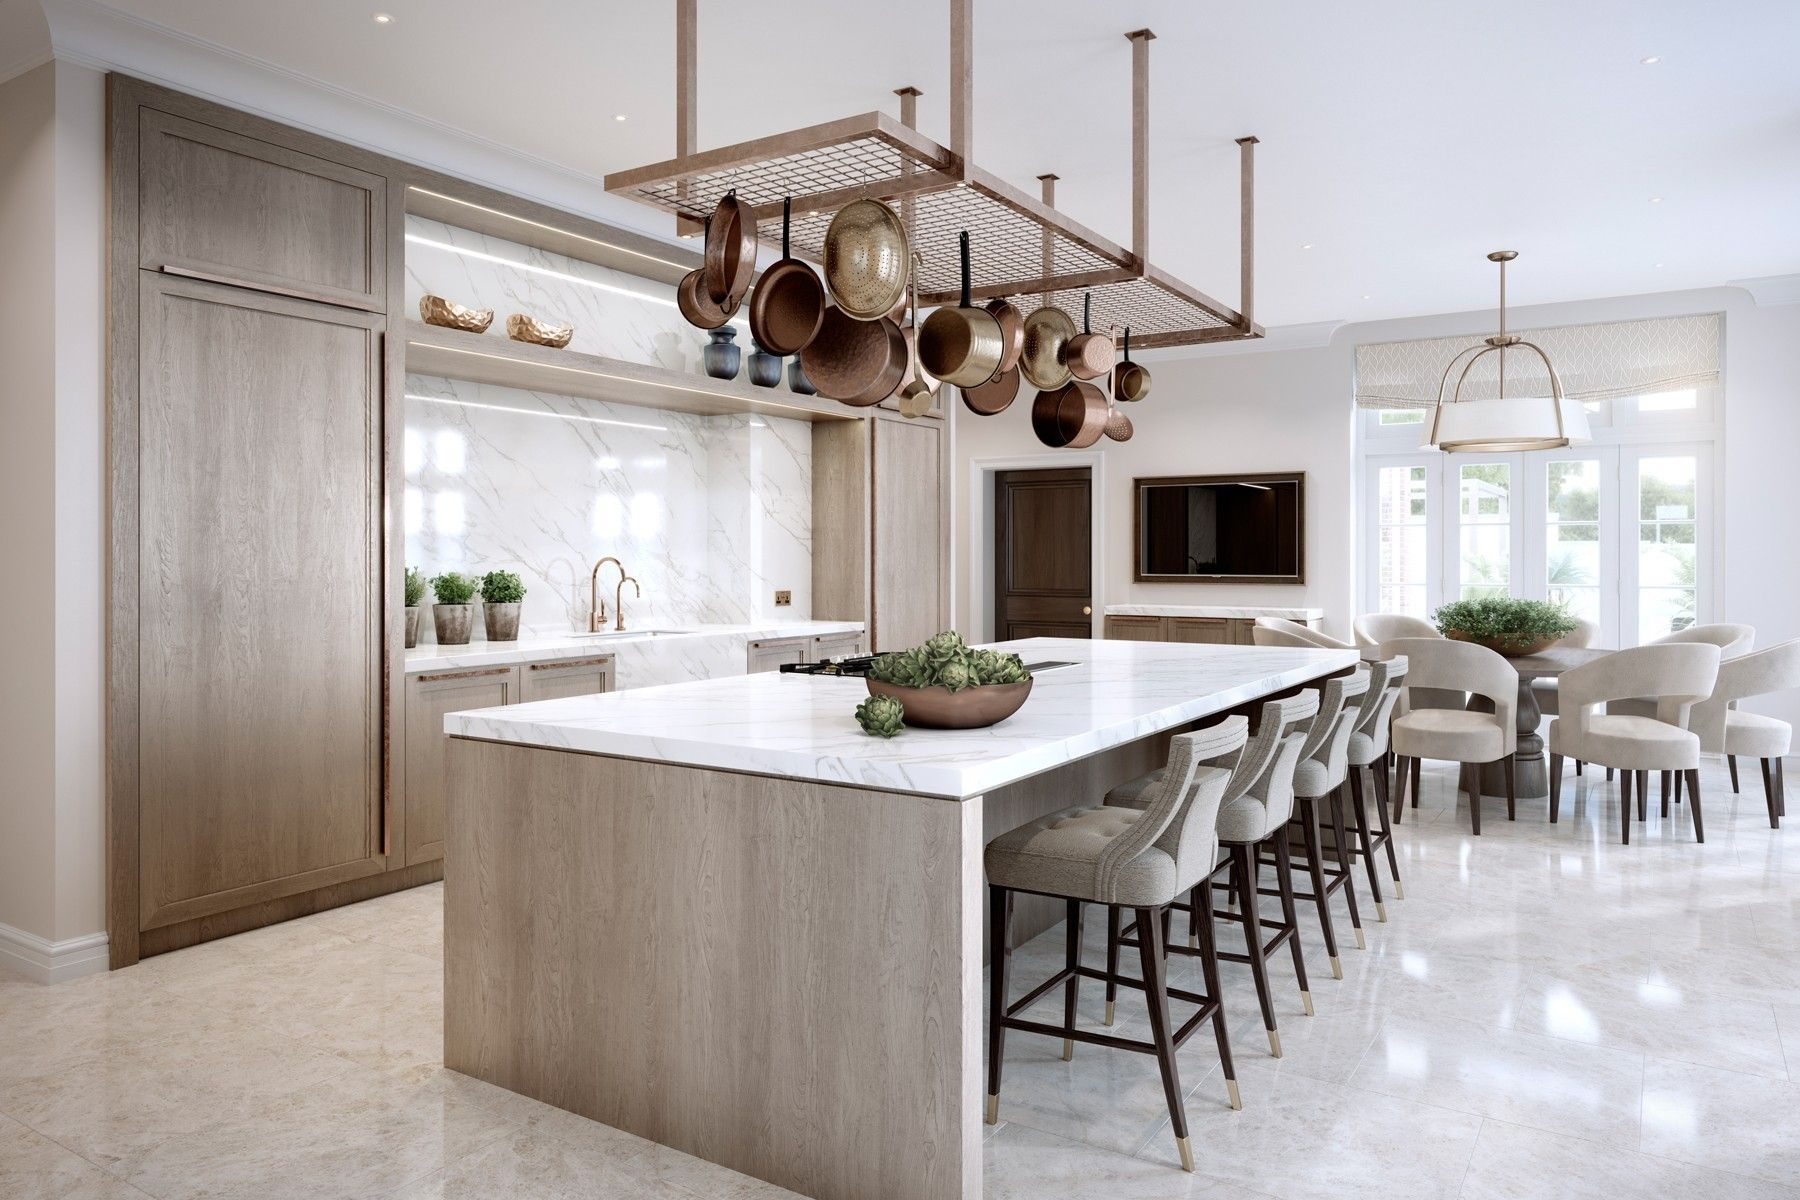 Delicieux Kitchen Seating Ideas Surrey Family Home, Luxury Interior Design Laura  Hammett